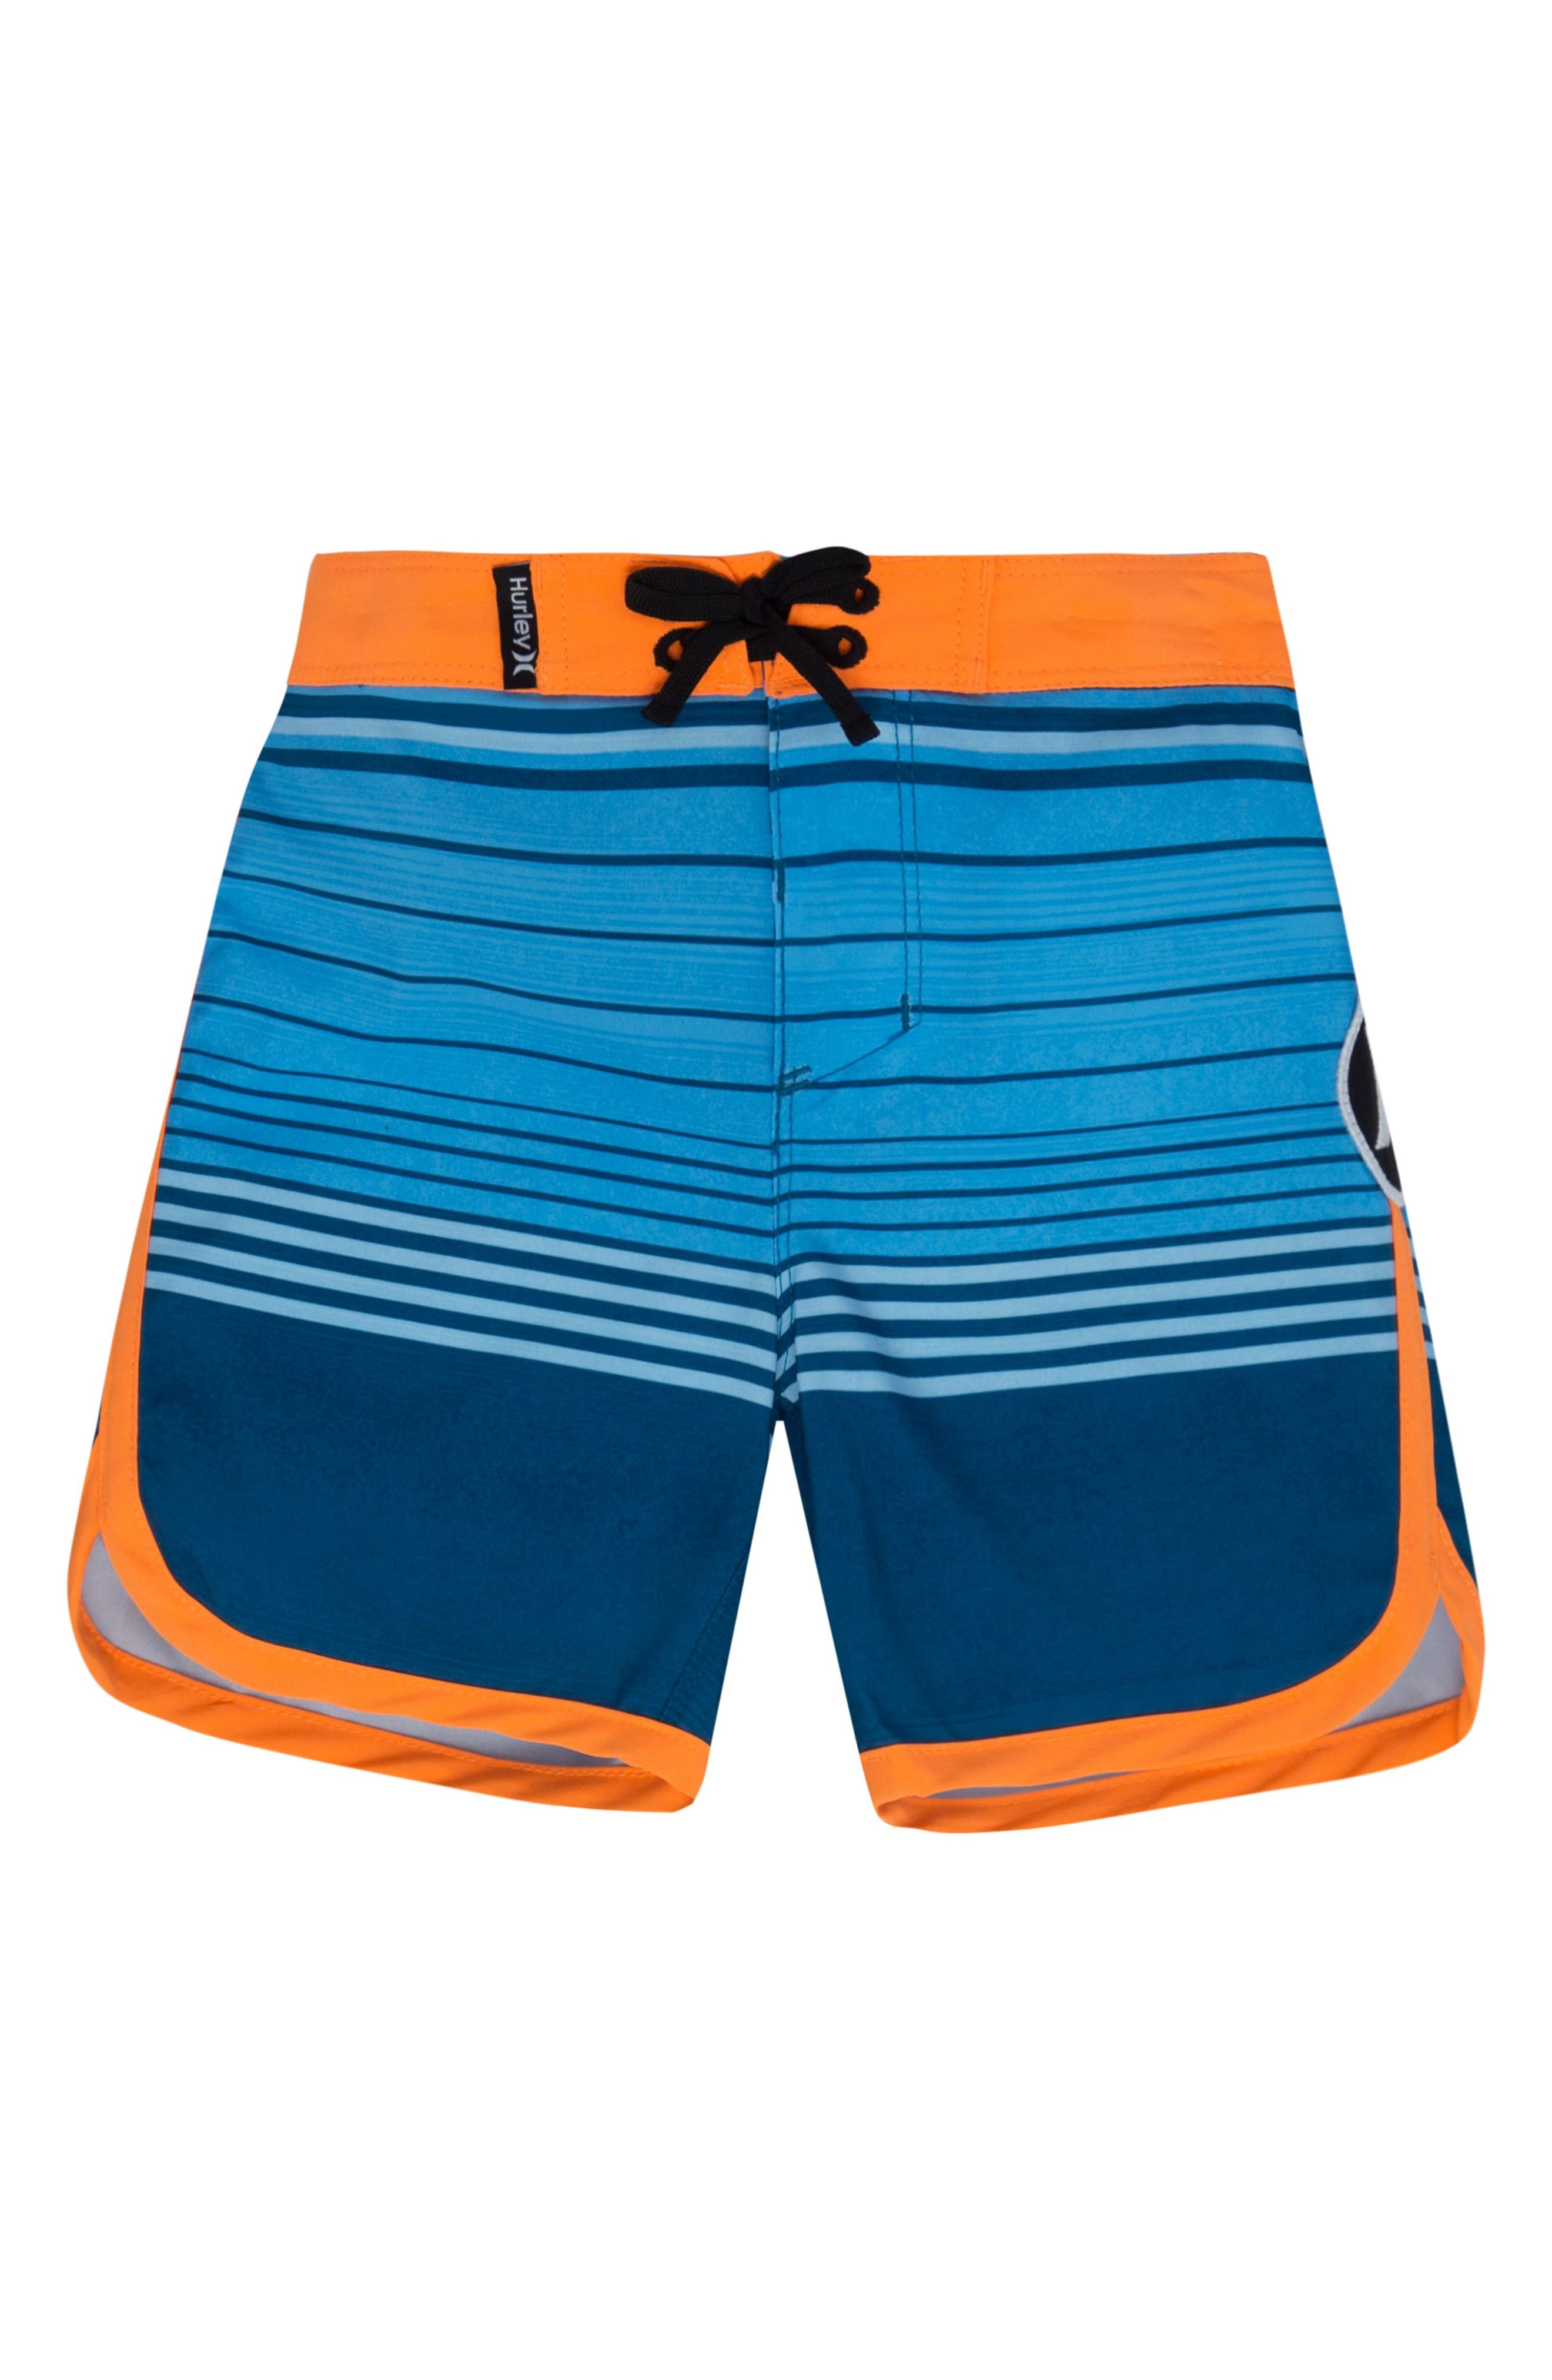 Peter Board Shorts,                         Main,                         color, Ice